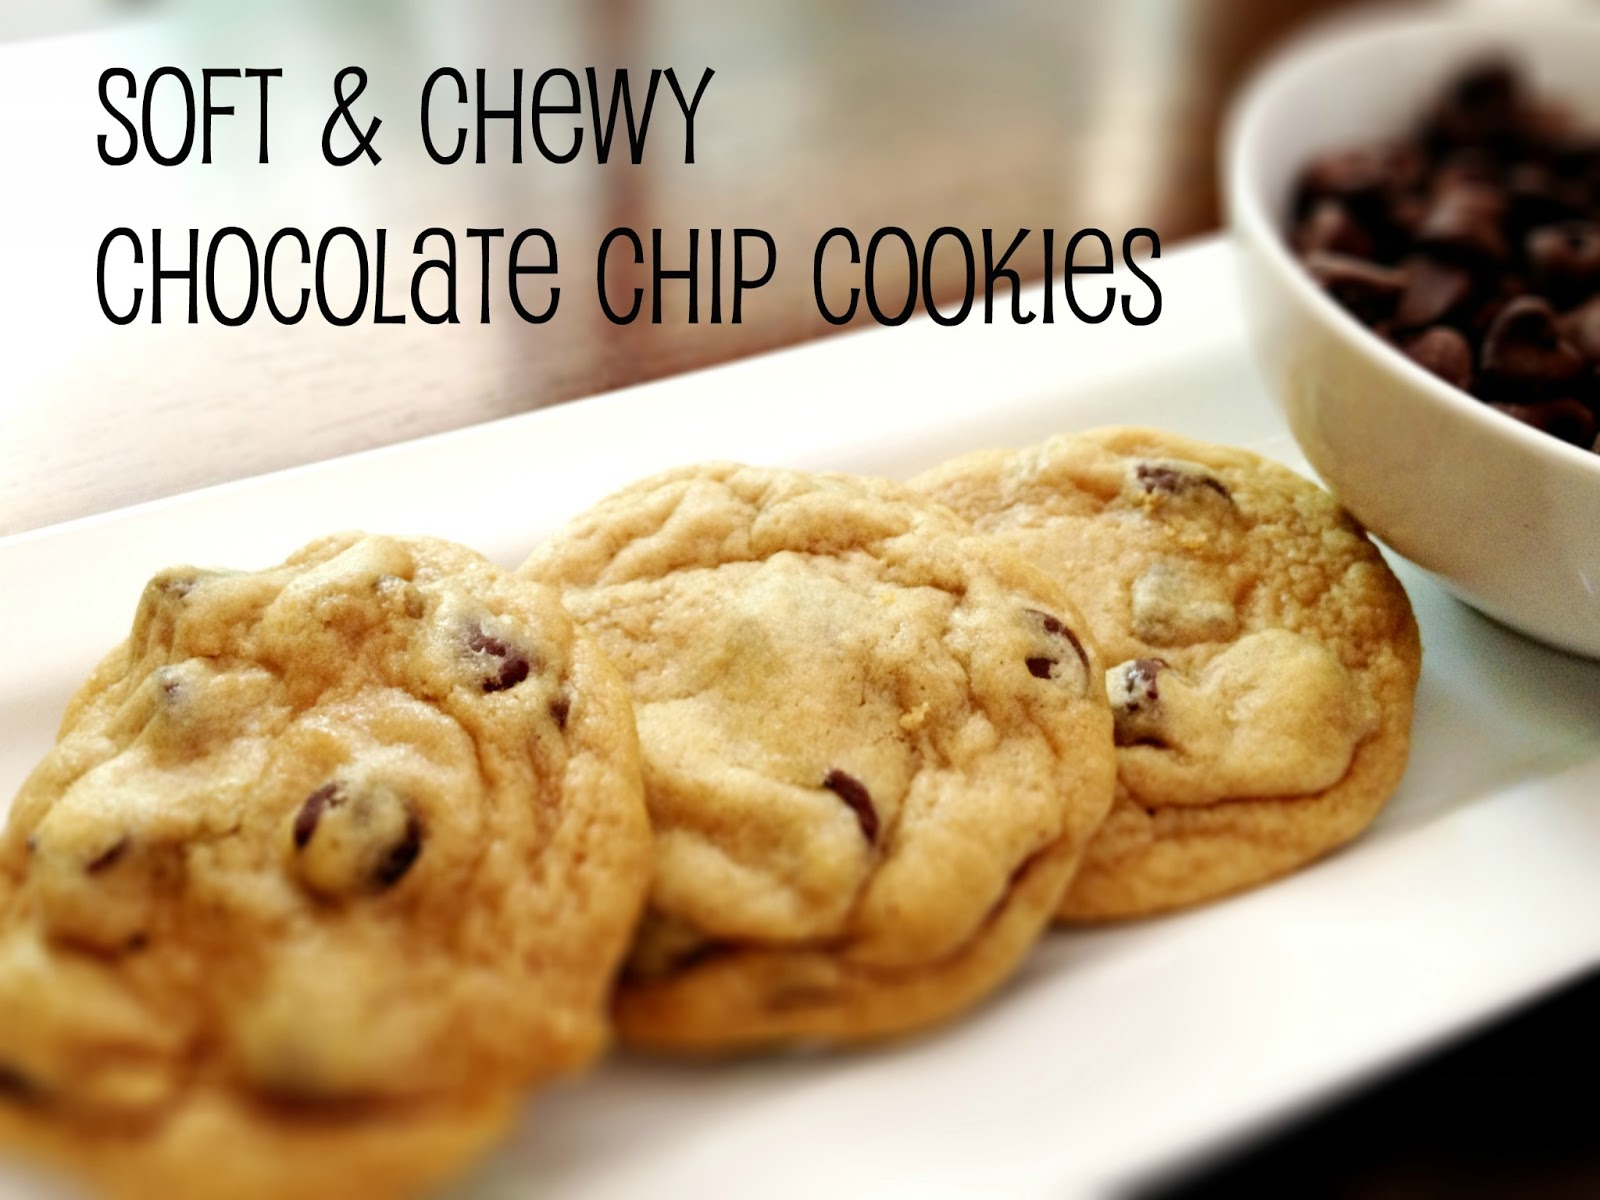 Life With The Williams: Soft & Chewy Chocolate Chip Cookies